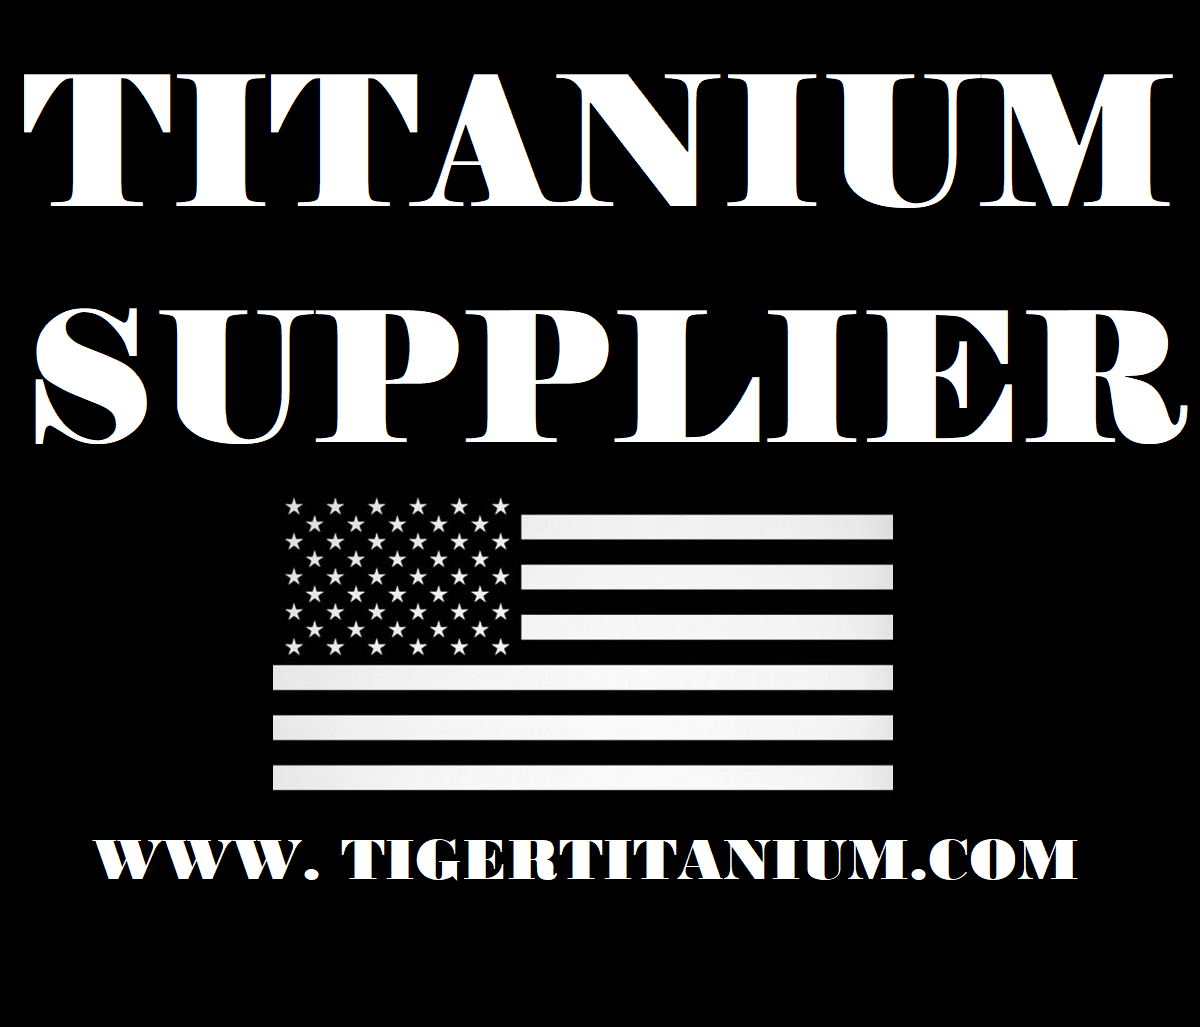 Titanium Supplier